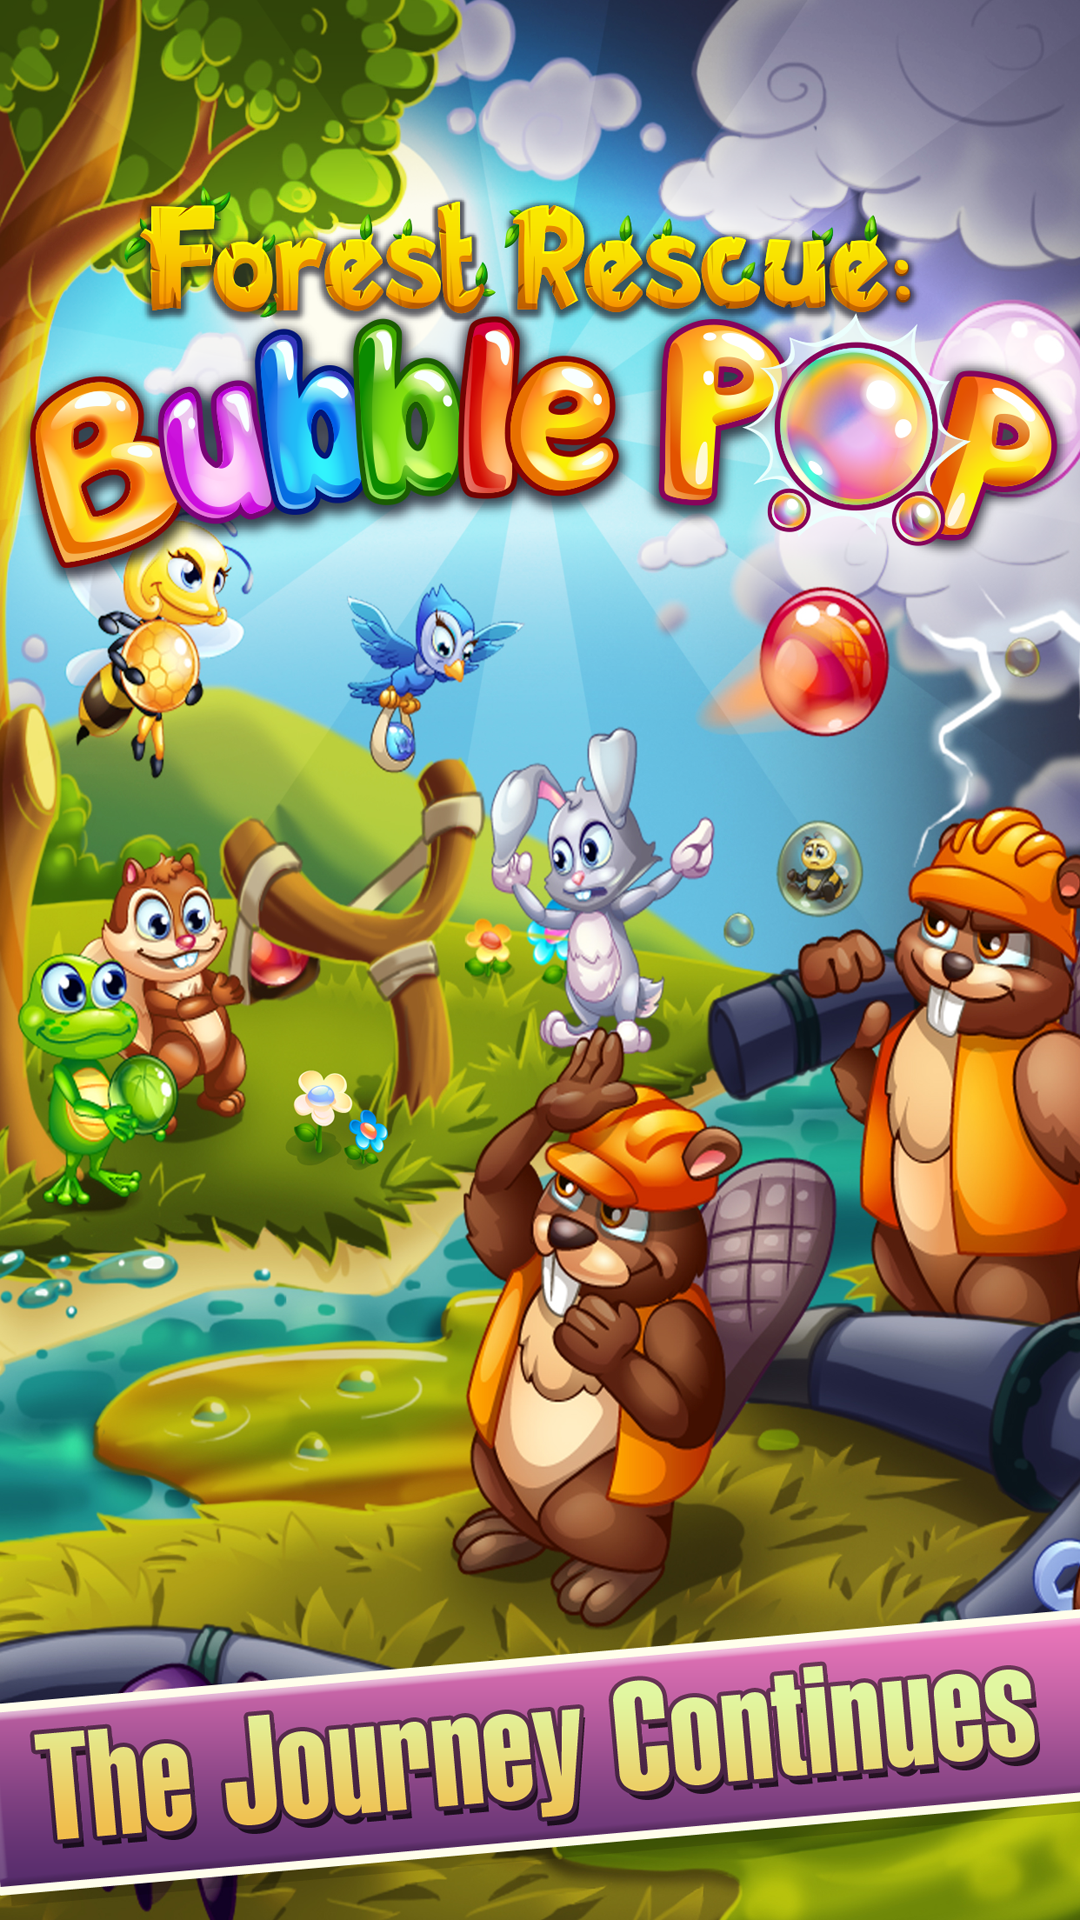 Bubble Shooter for Android - Free download and software